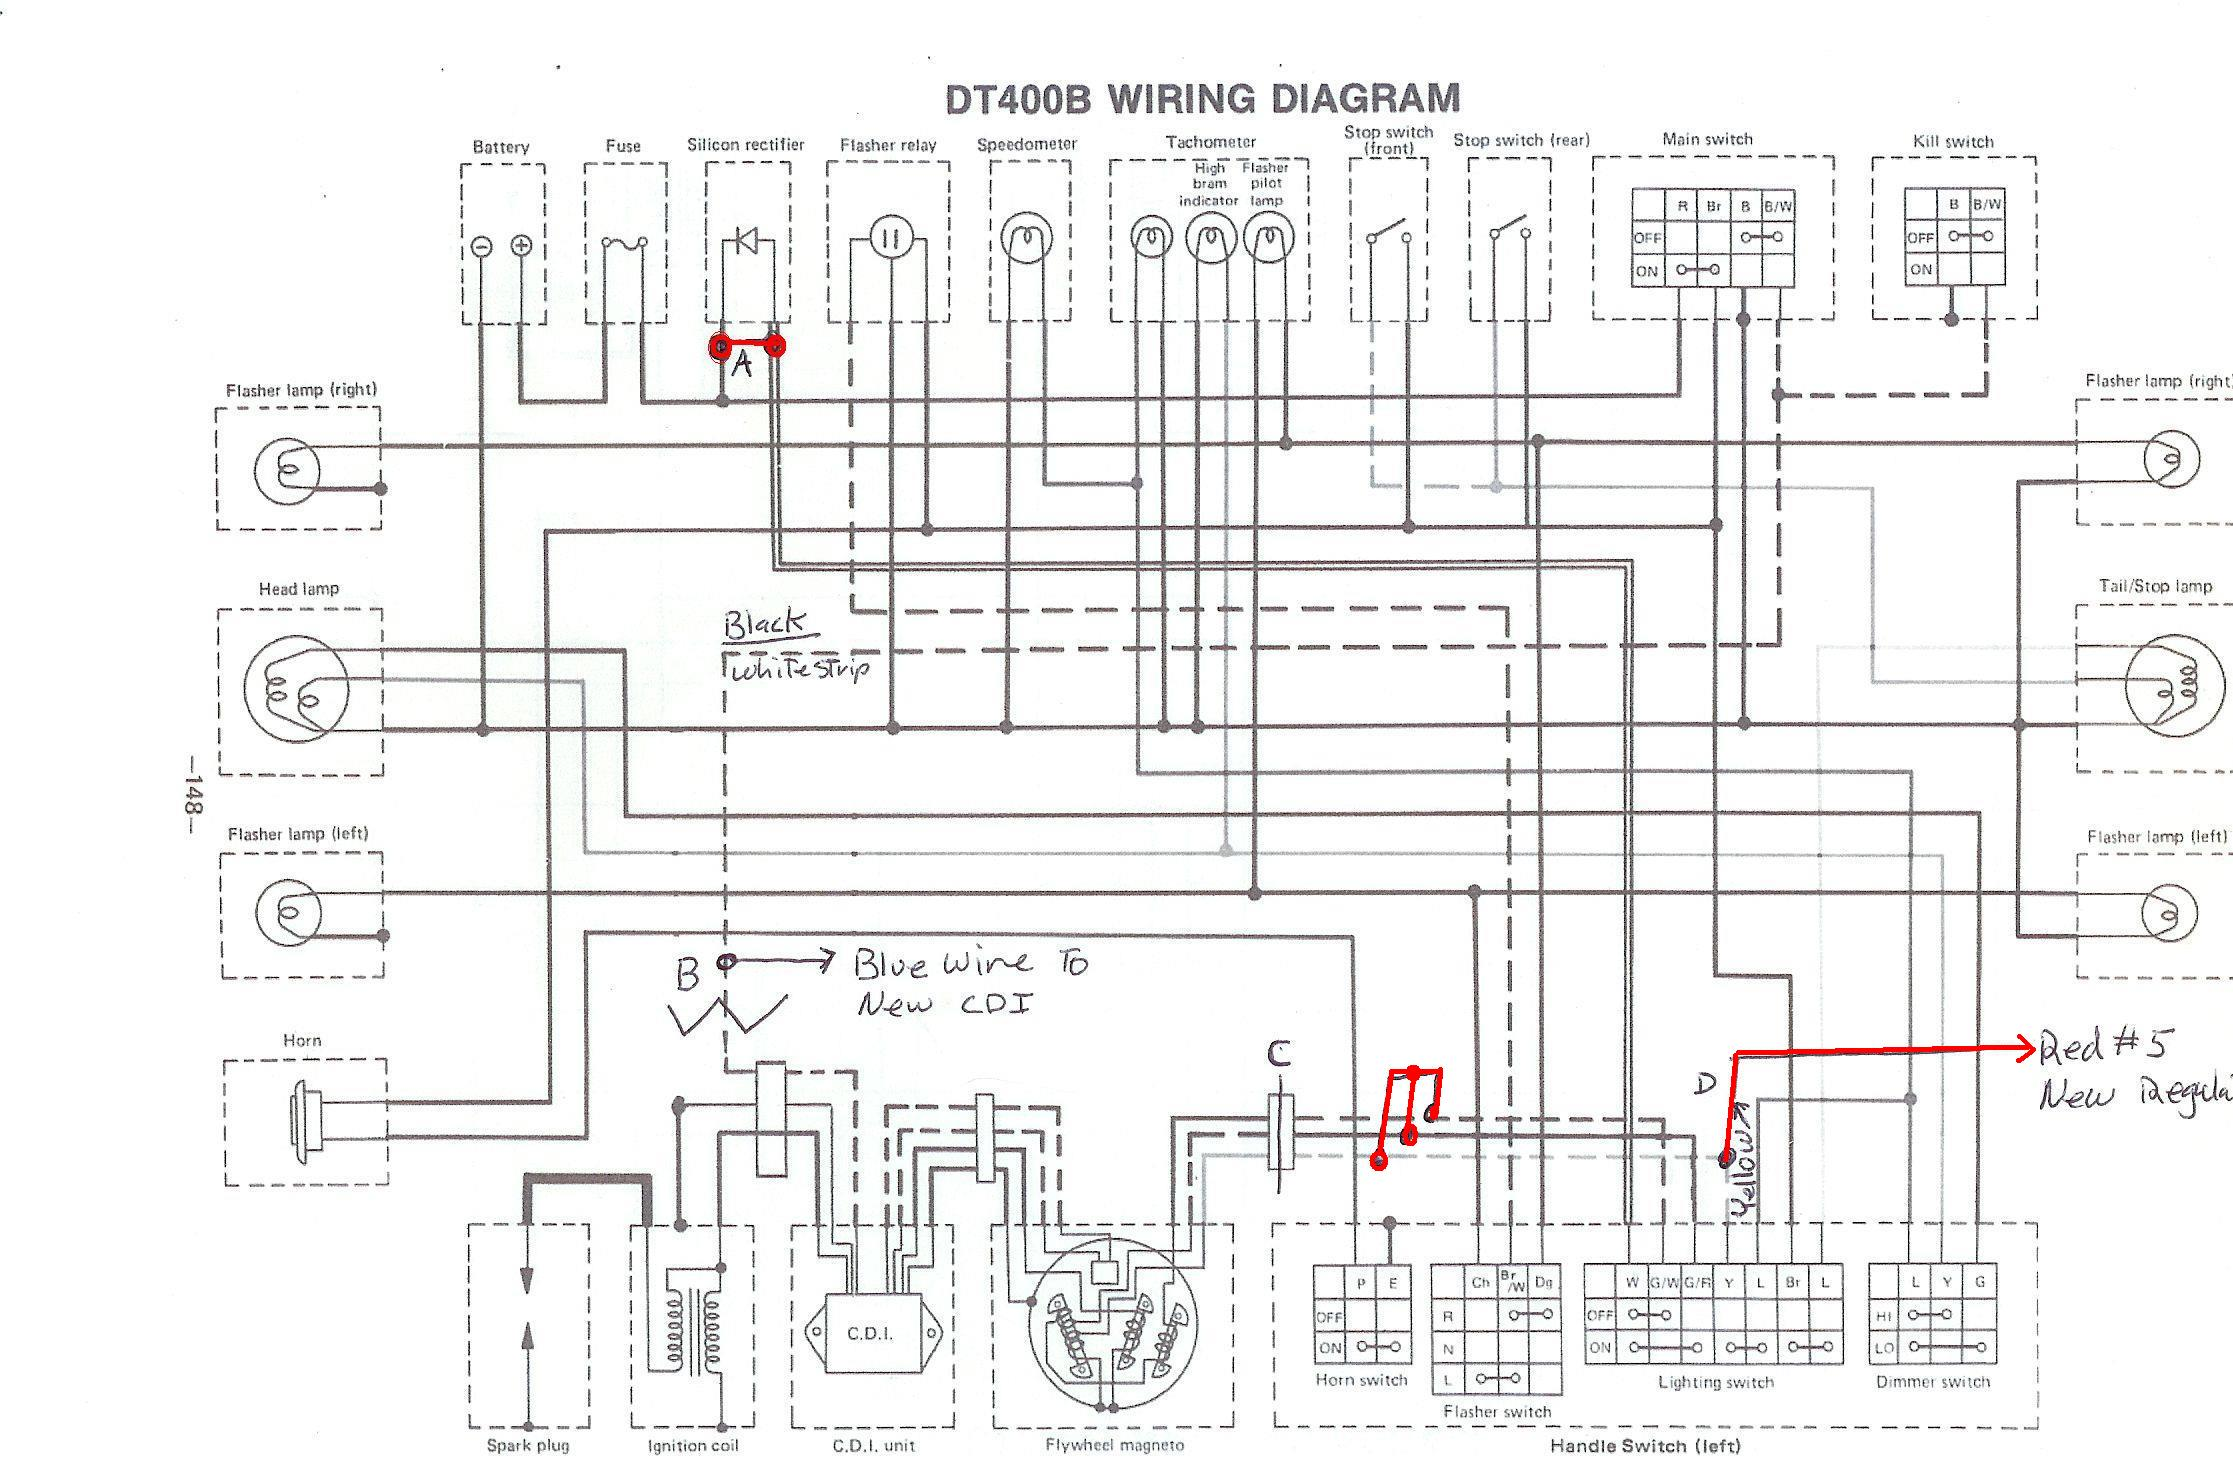 Yamaha Fs1e Wiring Diagram Great Installation Of Majesty 400 Diagrams U2022 Rh 4 Eap Ing De Fs1